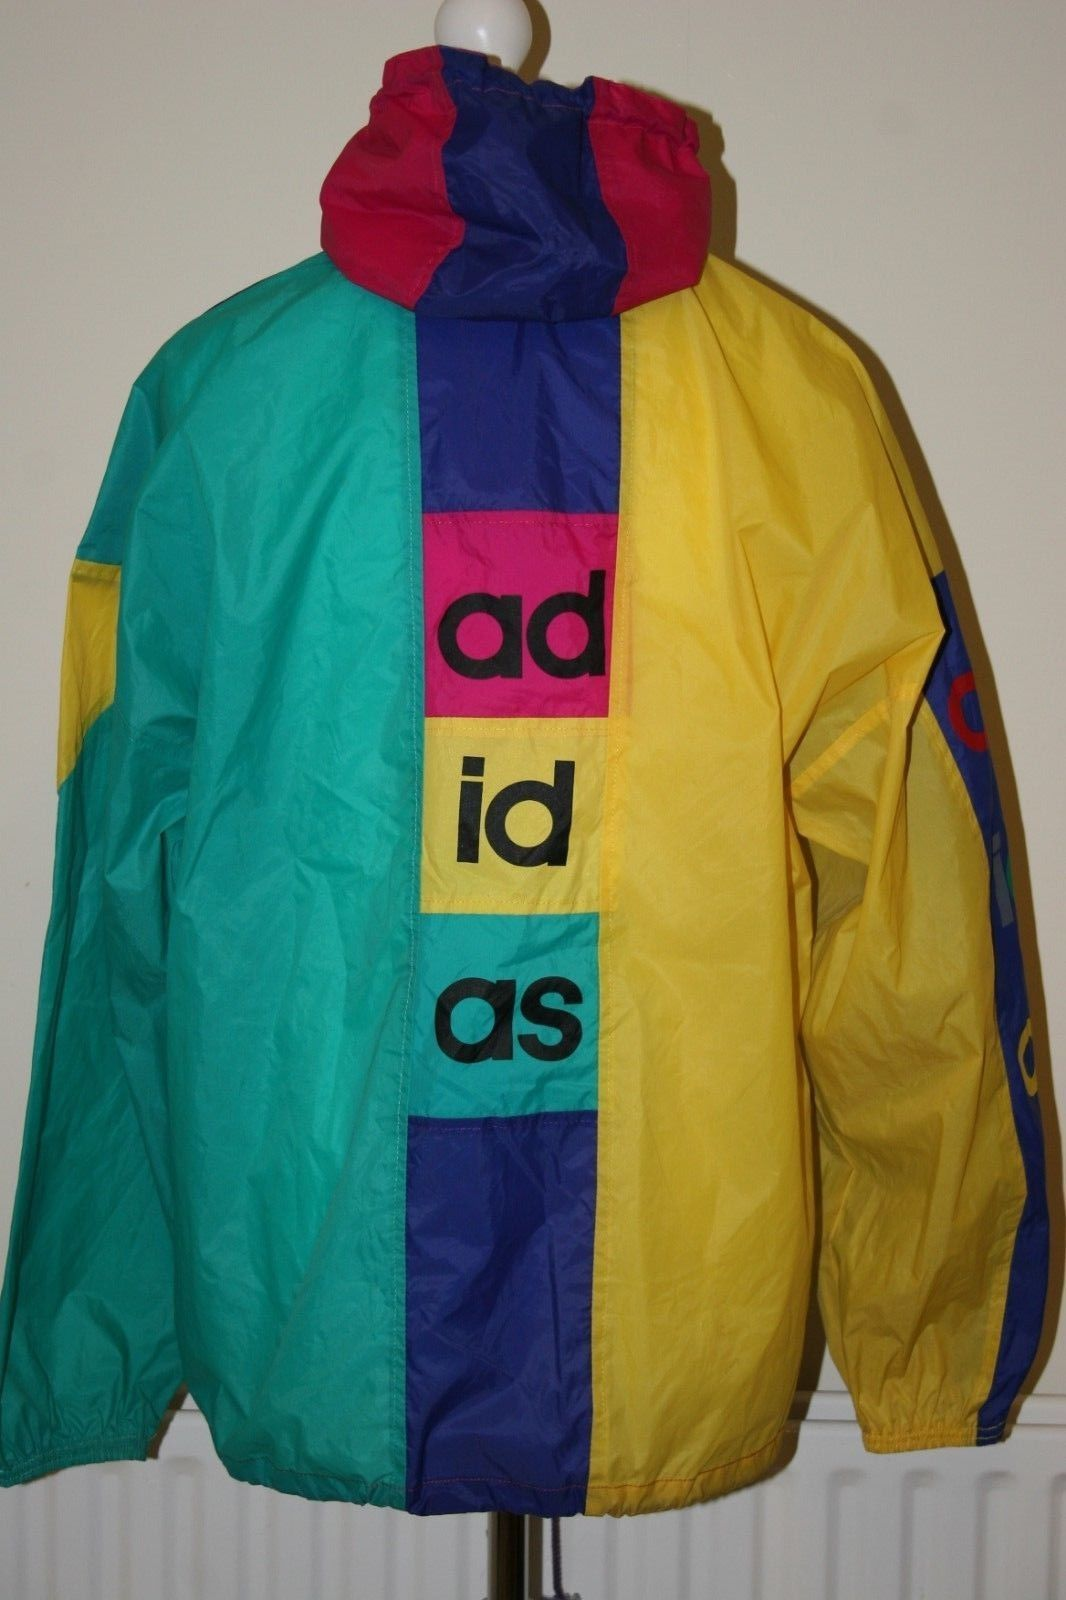 Vintage 90' ADIDAS Original Windbreaker Halfzipper Pullover Colour Block Multi Colour Oversize Jacket Size M